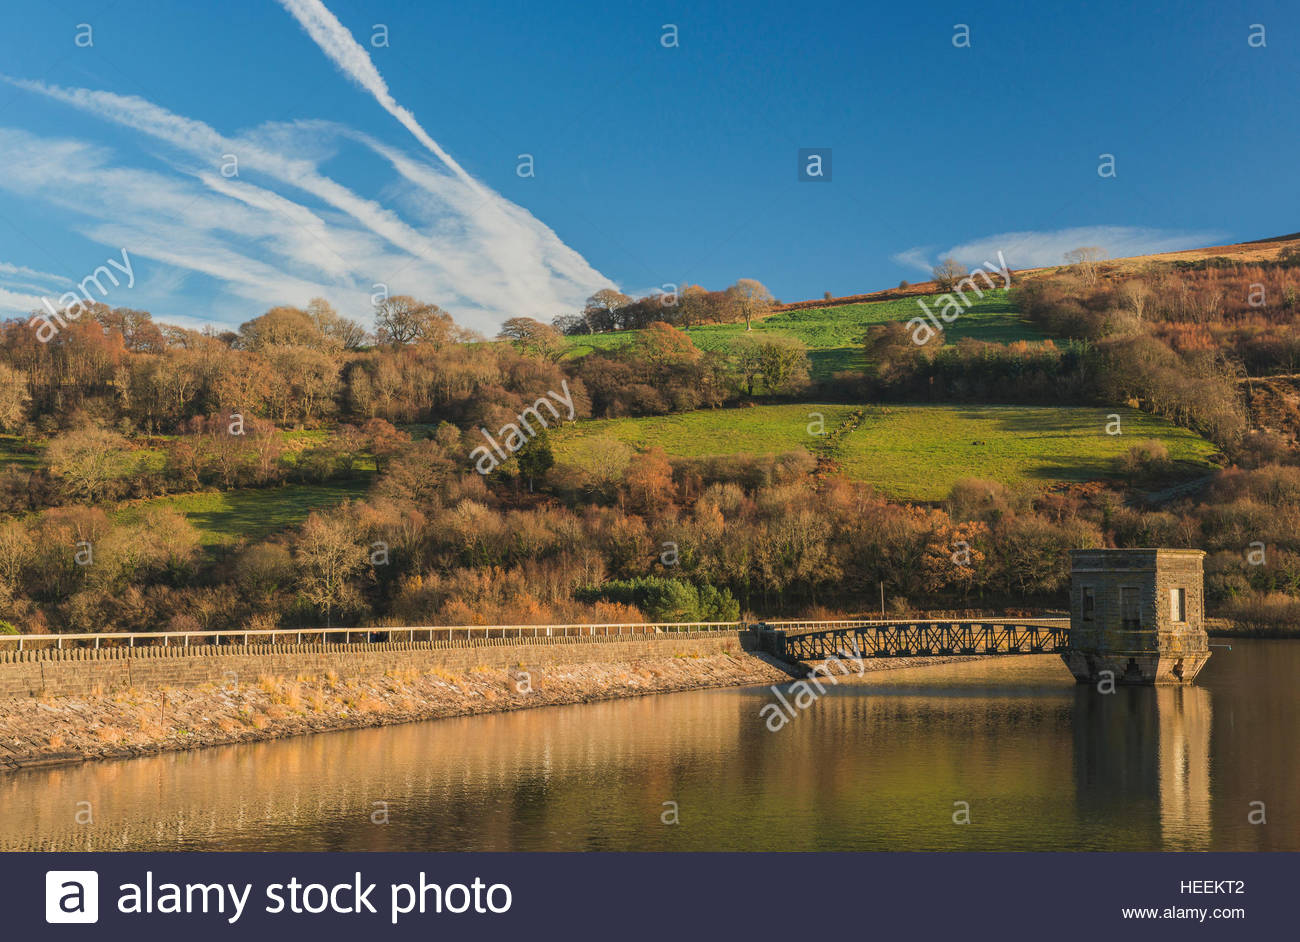 Brecon Beacons National Park South Wales, Talybont Reservoir and Dam Brecon Beacons National Park south ...